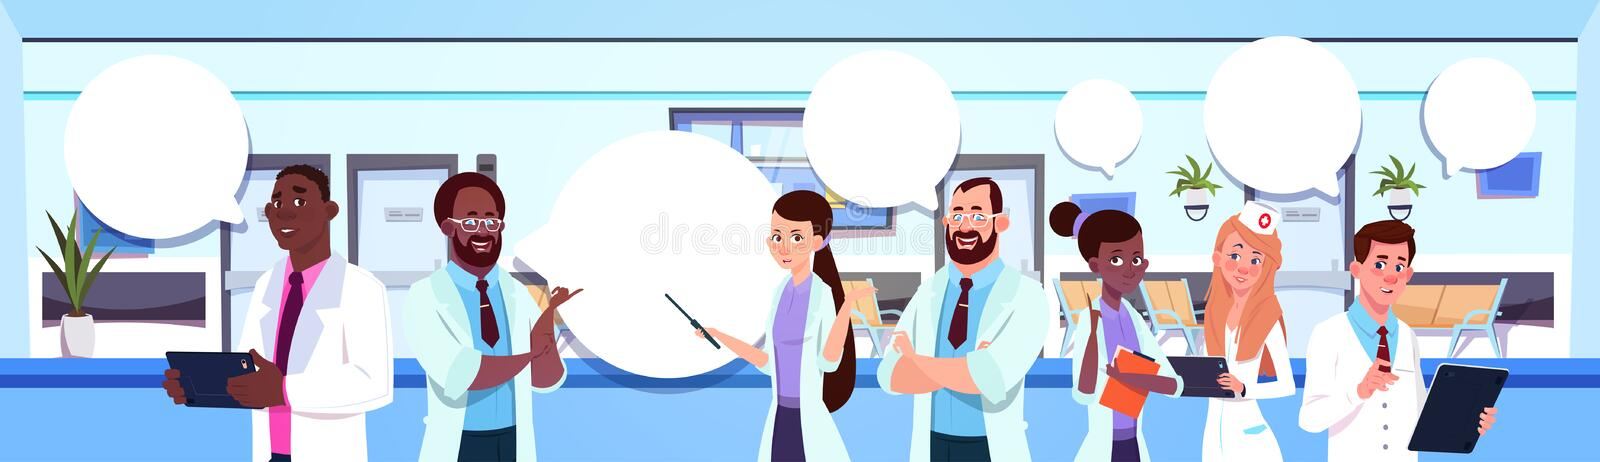 Group Of Mix Race Doctors Standing Over Modern Hospital Or Clinic Interior Background. Flat Vector Illustration royalty free illustration